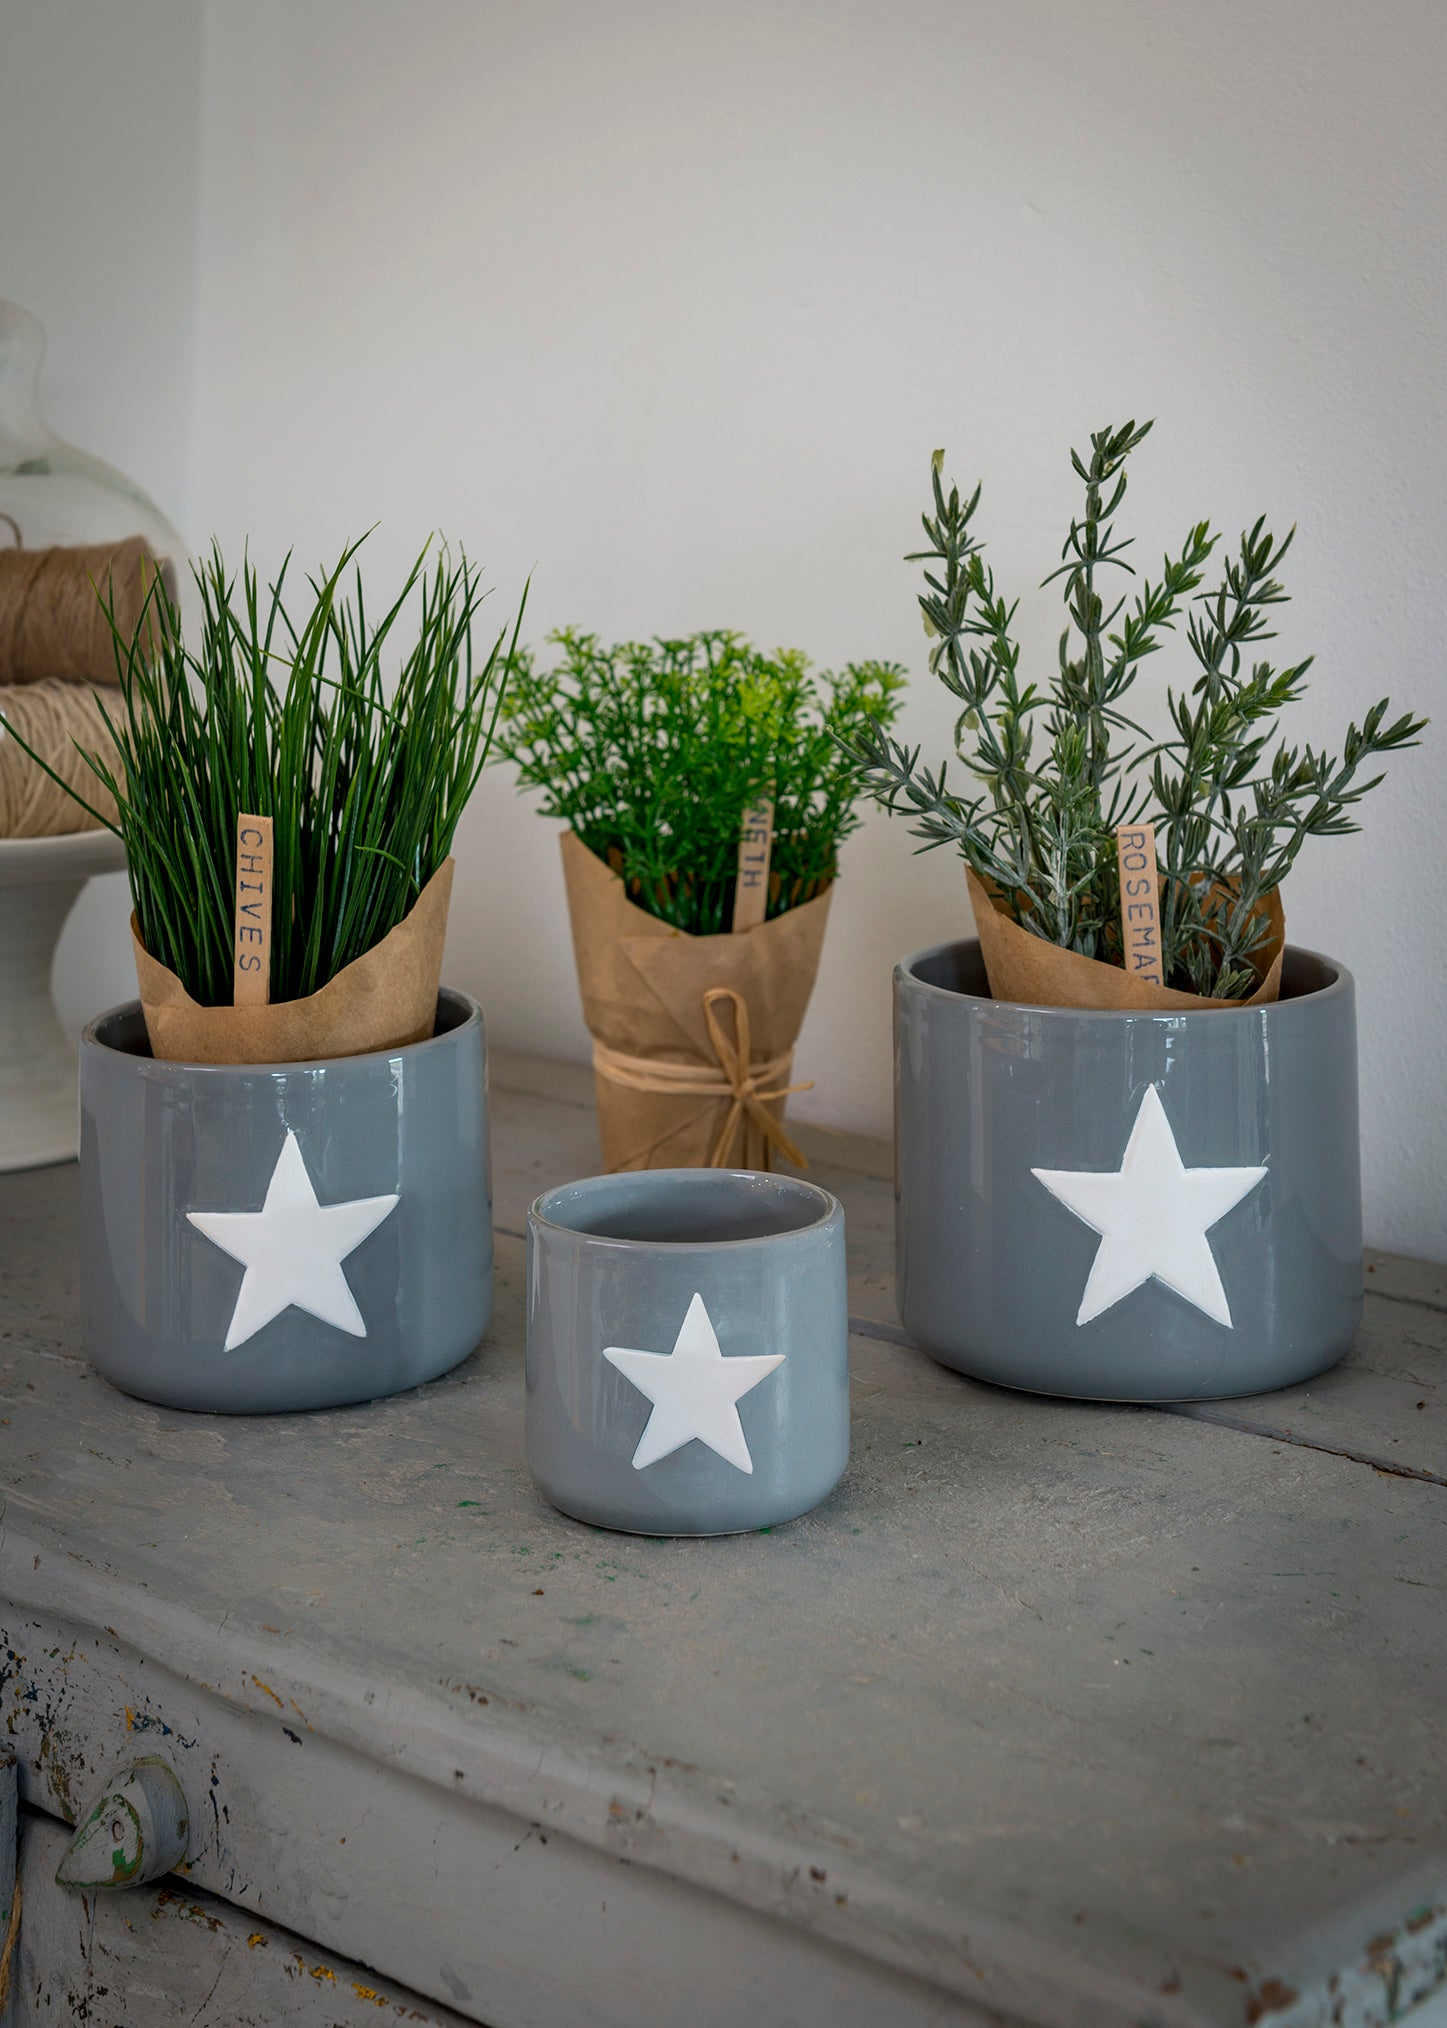 Set of 3 Grey & White star pots